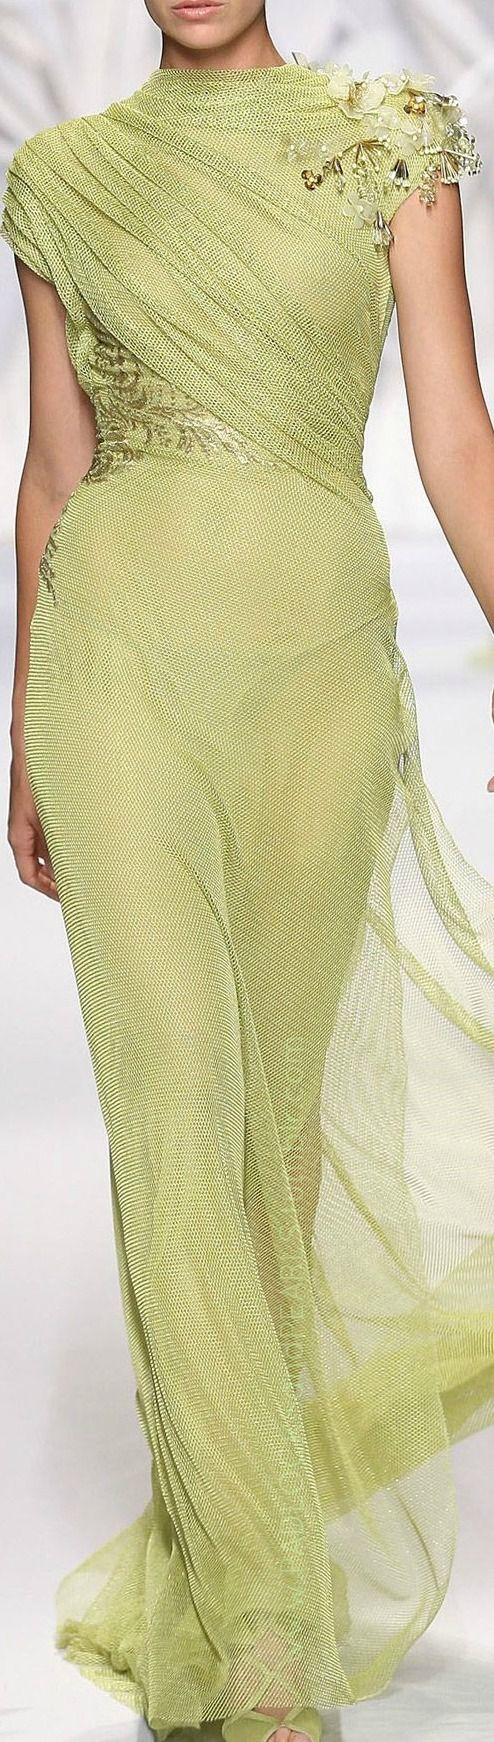 That's such a gorgeous color. And the fabric is really neat. It looks as though it would travel well, and be cool up on stage.